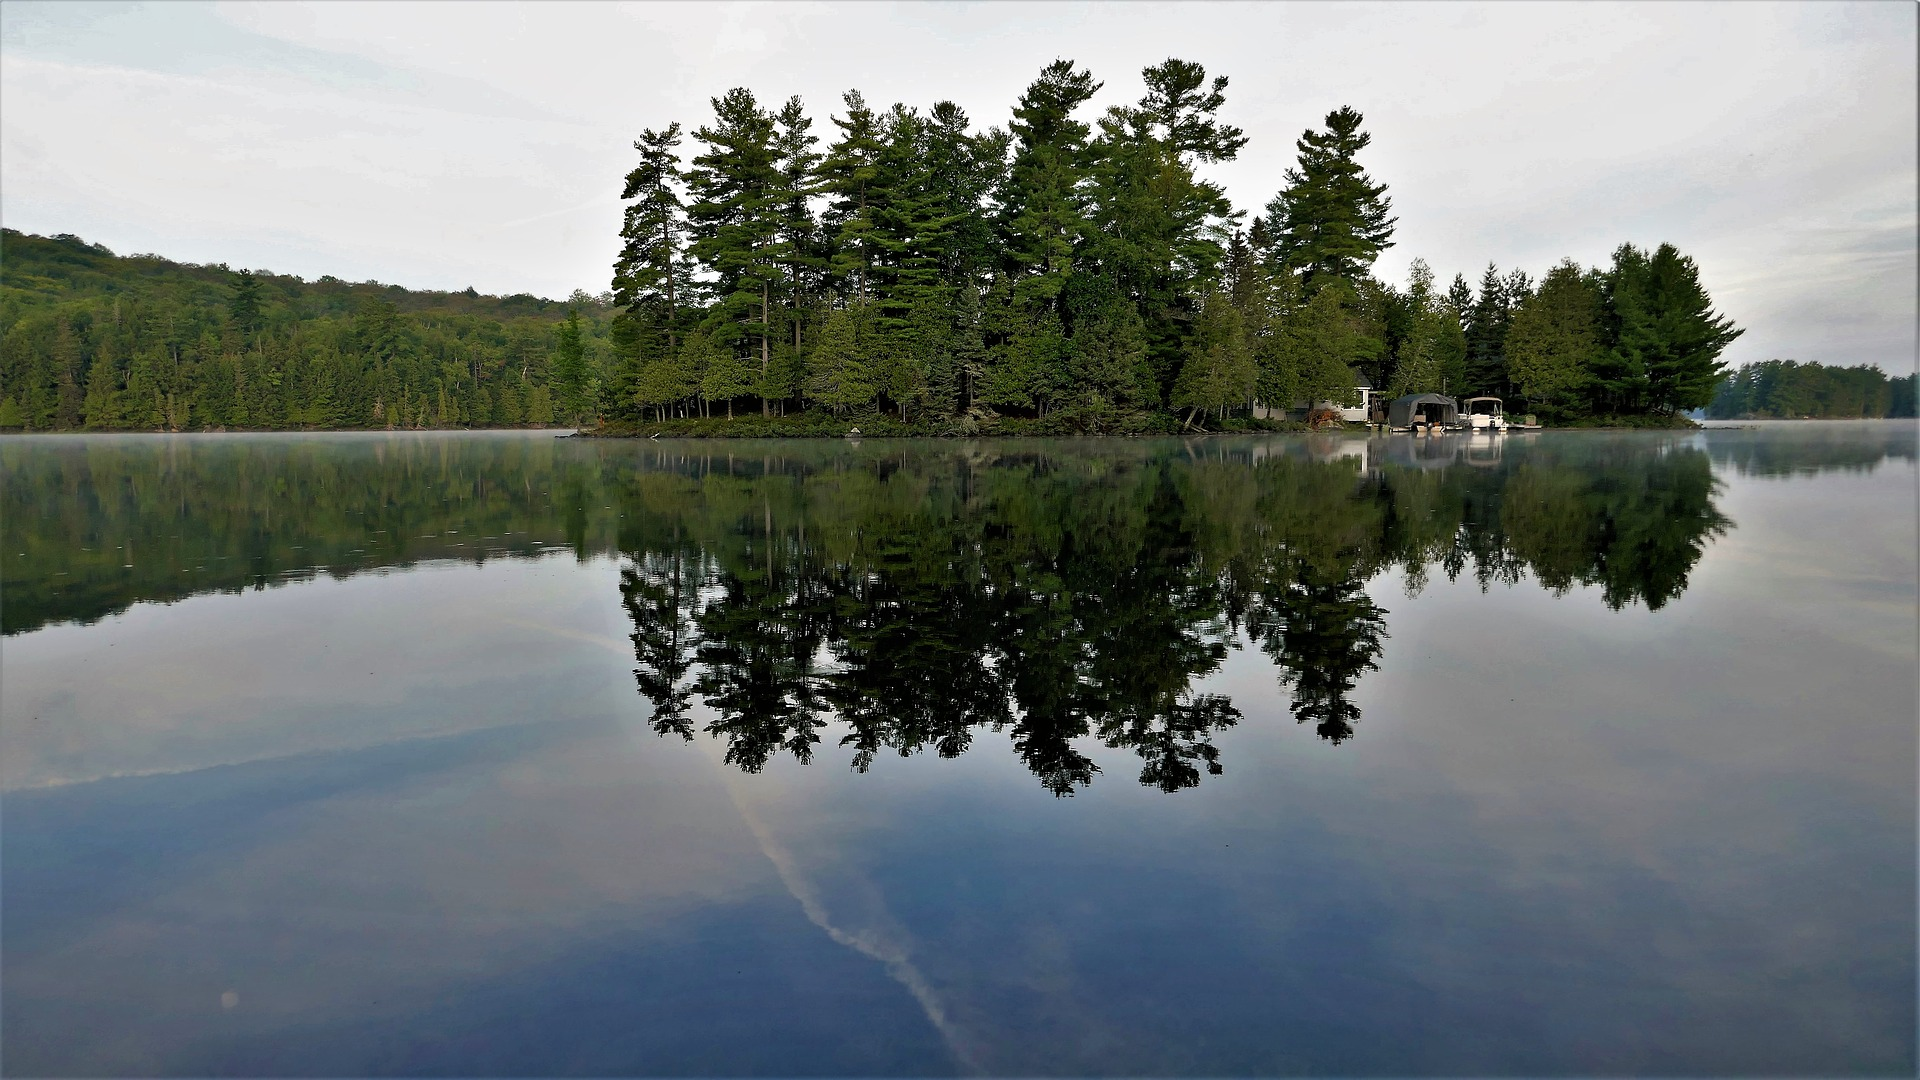 The Ontarian A Professional Welder Who Provided Full Name But Asked To Remain Anonymous Told Cryptozoology News He Was Driving On Highway By Lake